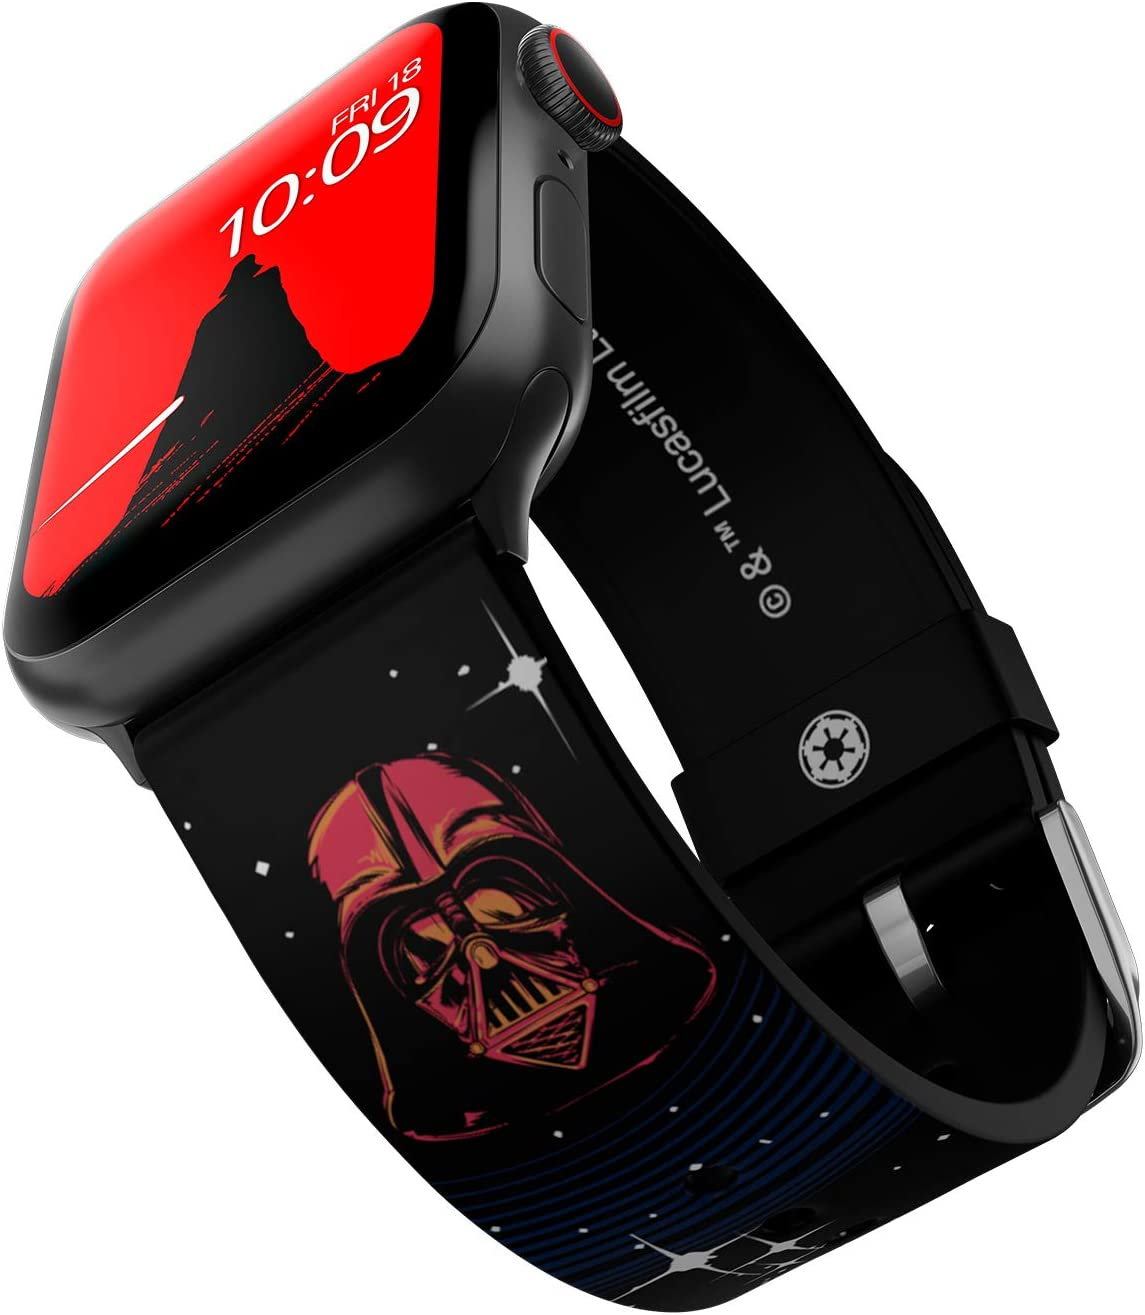 Star Wars - Darth Vader Edition – Officially Licensed Silicone Smartwatch Band Compatible with Apple Watch, Fits 38mm, 40mm, 42mm and 44mm